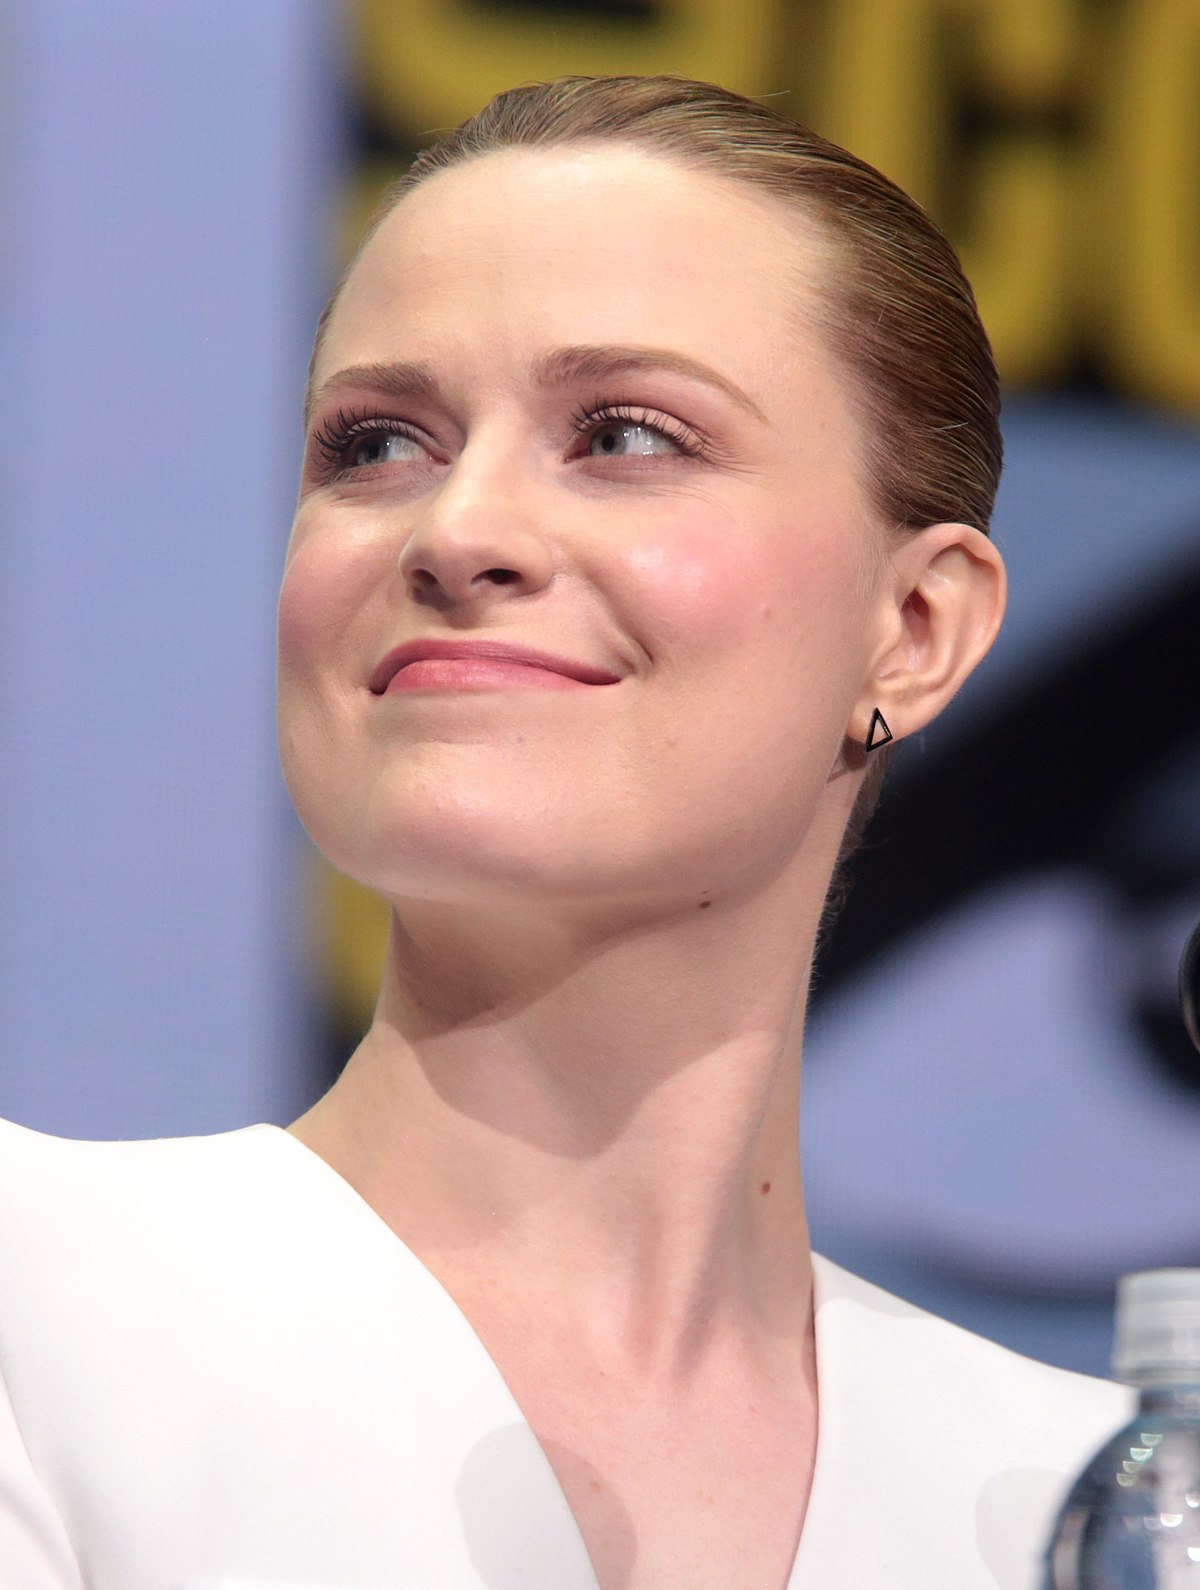 Evan Rachel Wood - Wikipedia Evan Rachel Wood